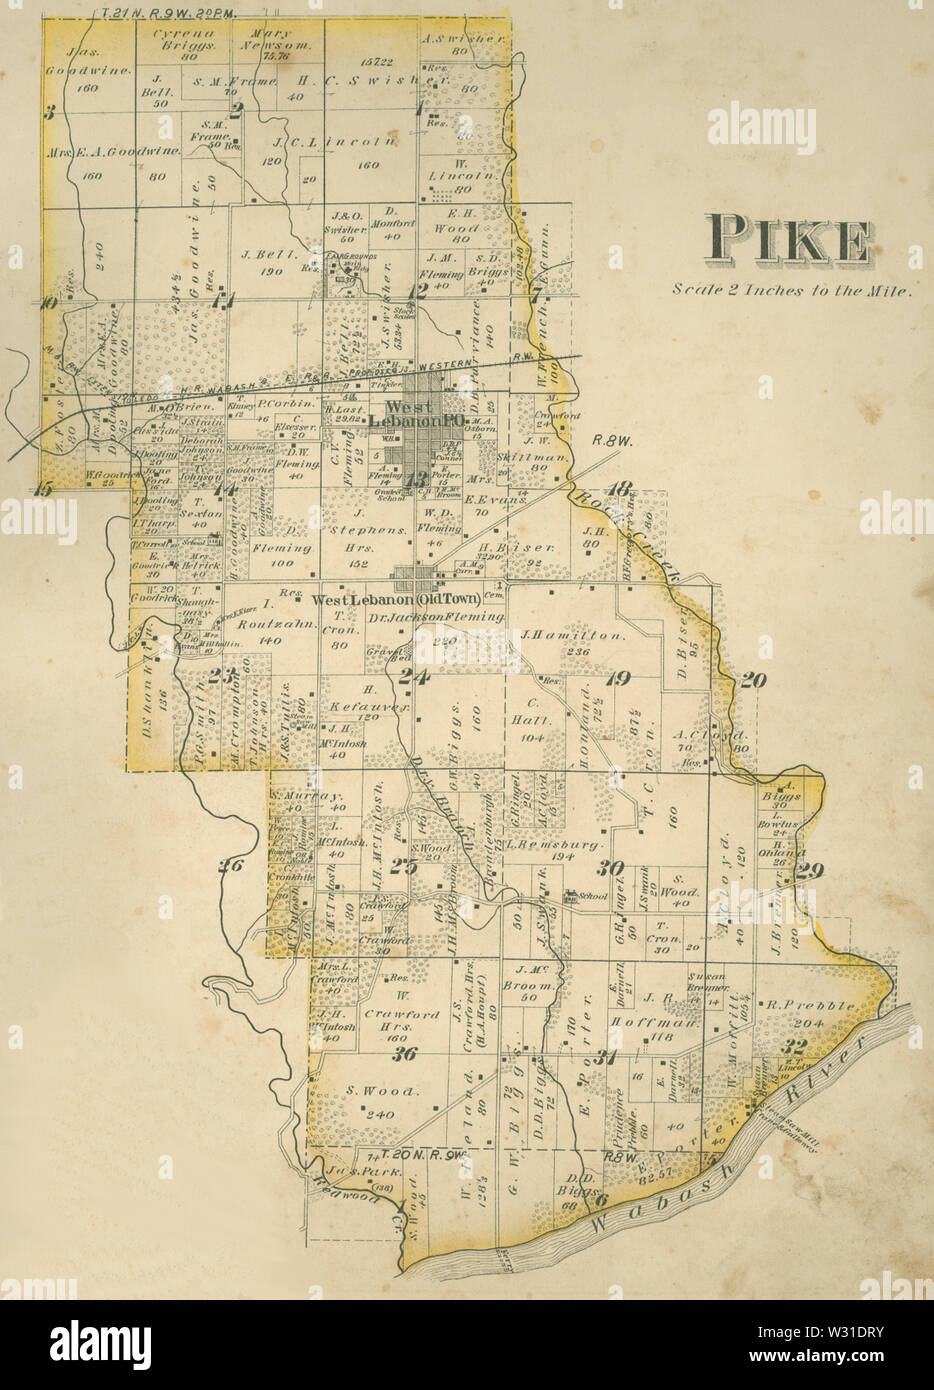 Pike Township, Warren County, Indiana map from 1877 atlas - Stock Image